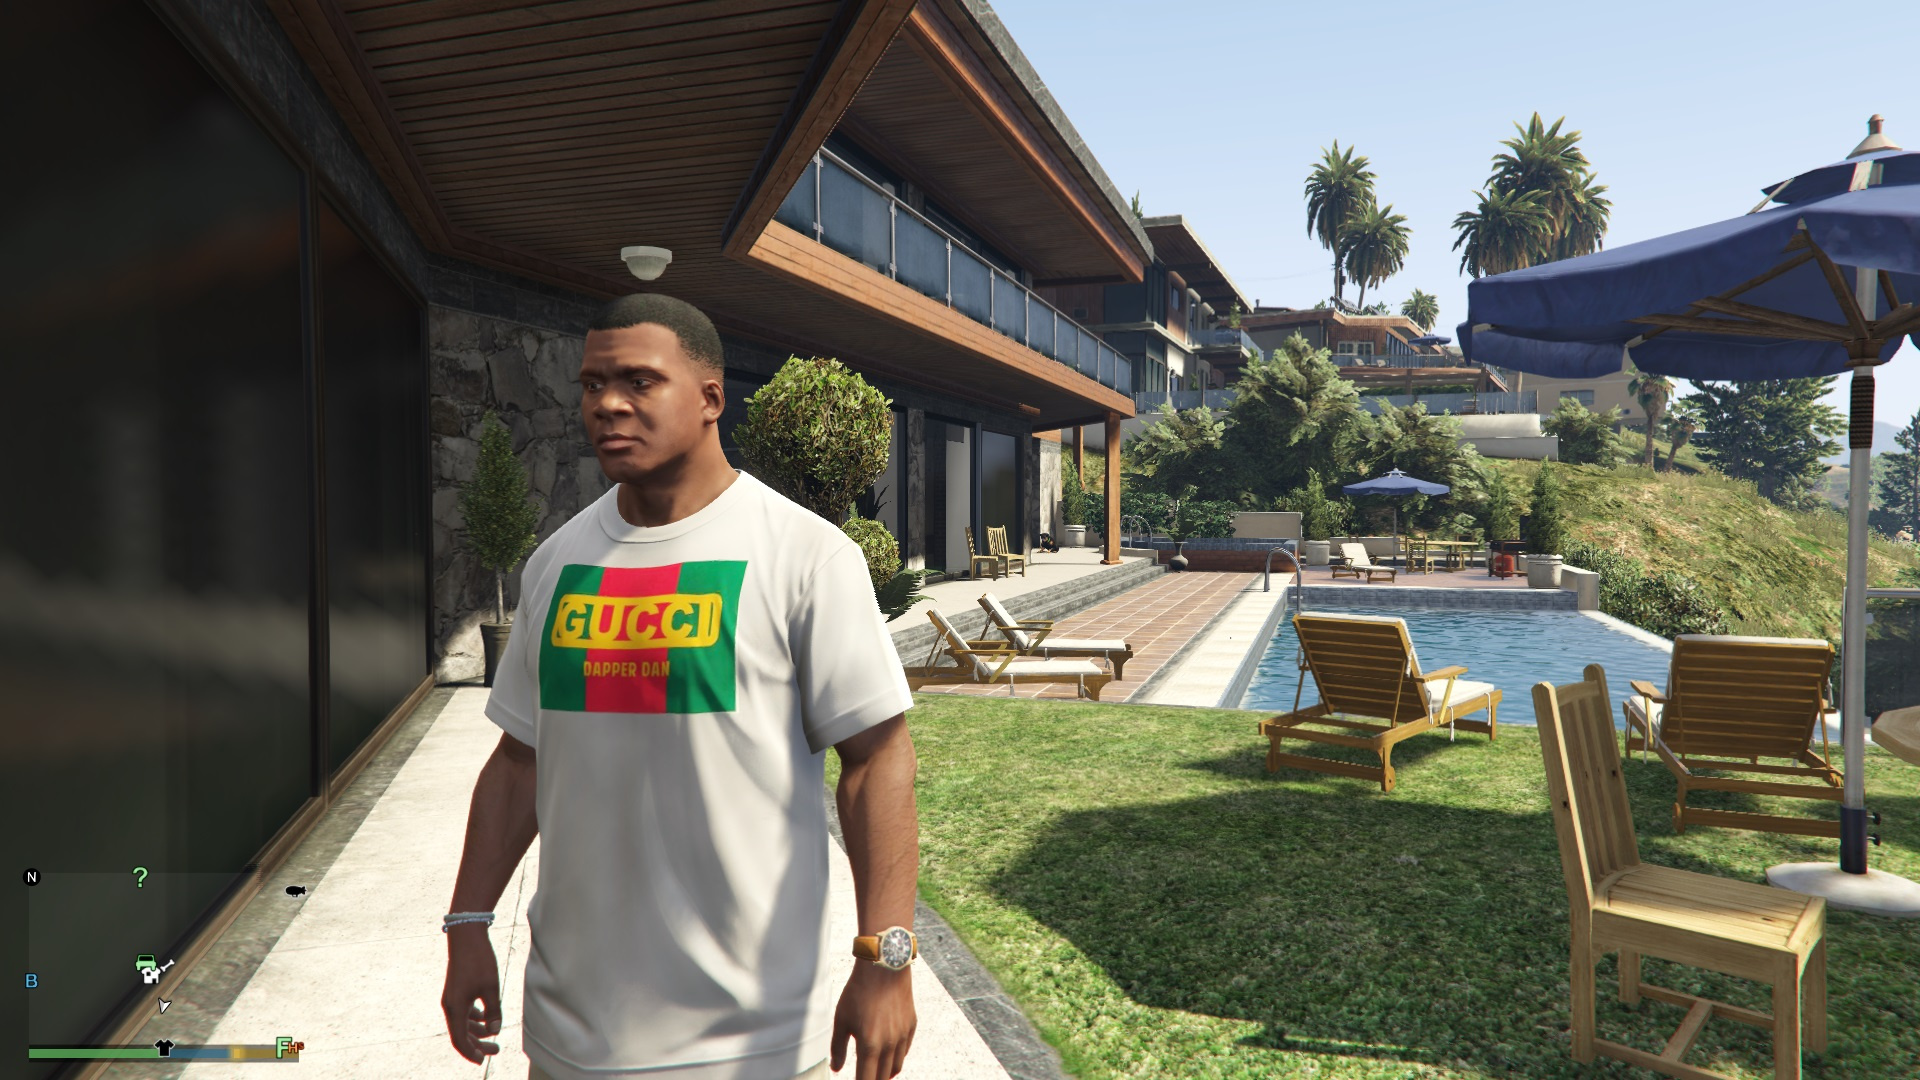 9a1b3169 GUCCI DAPPER DAN T-SHIRT - GTA5-Mods.com